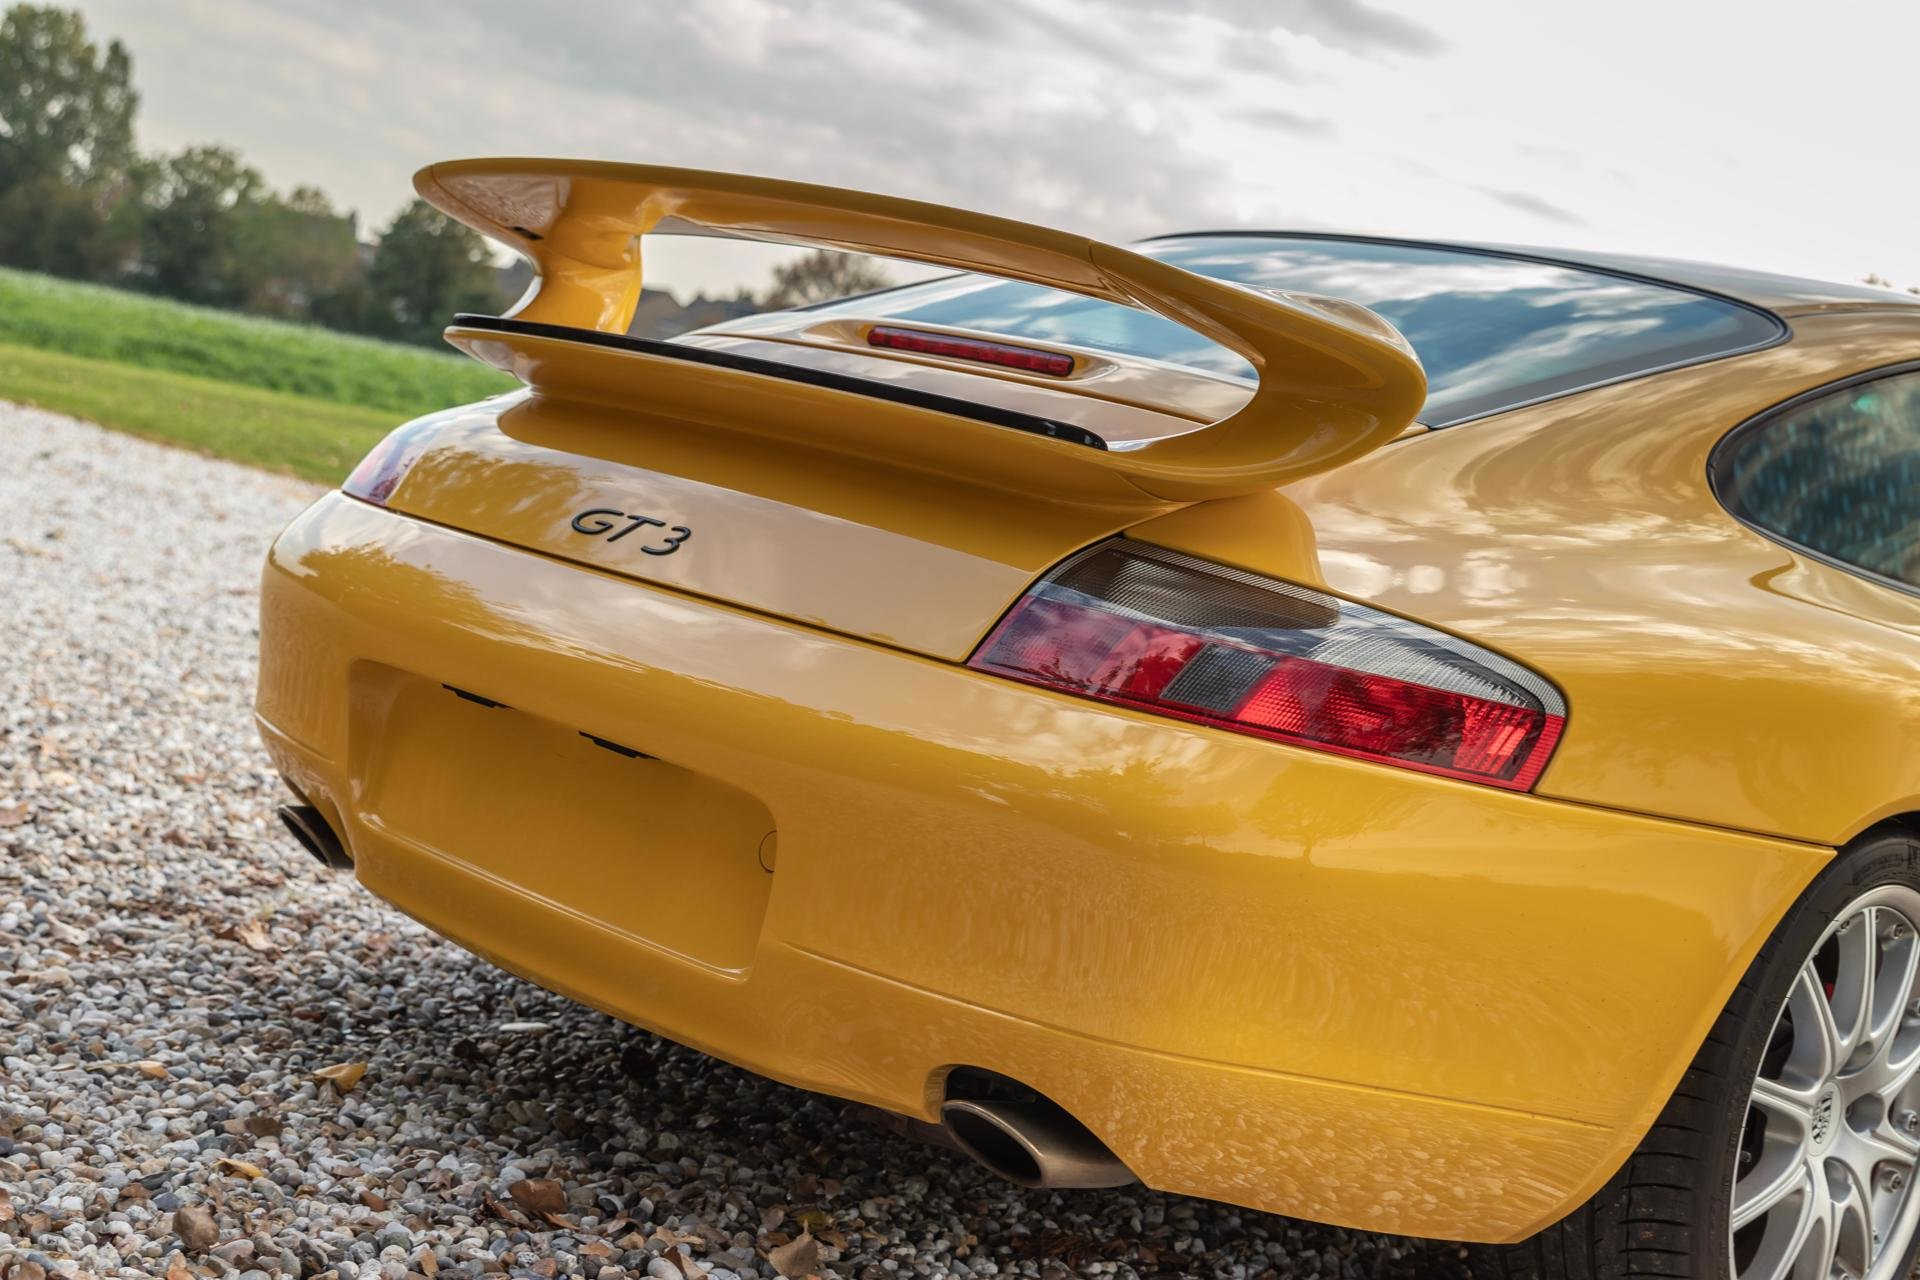 Real Art on Wheels | 2001 Porsche 996 GT3 Mark I